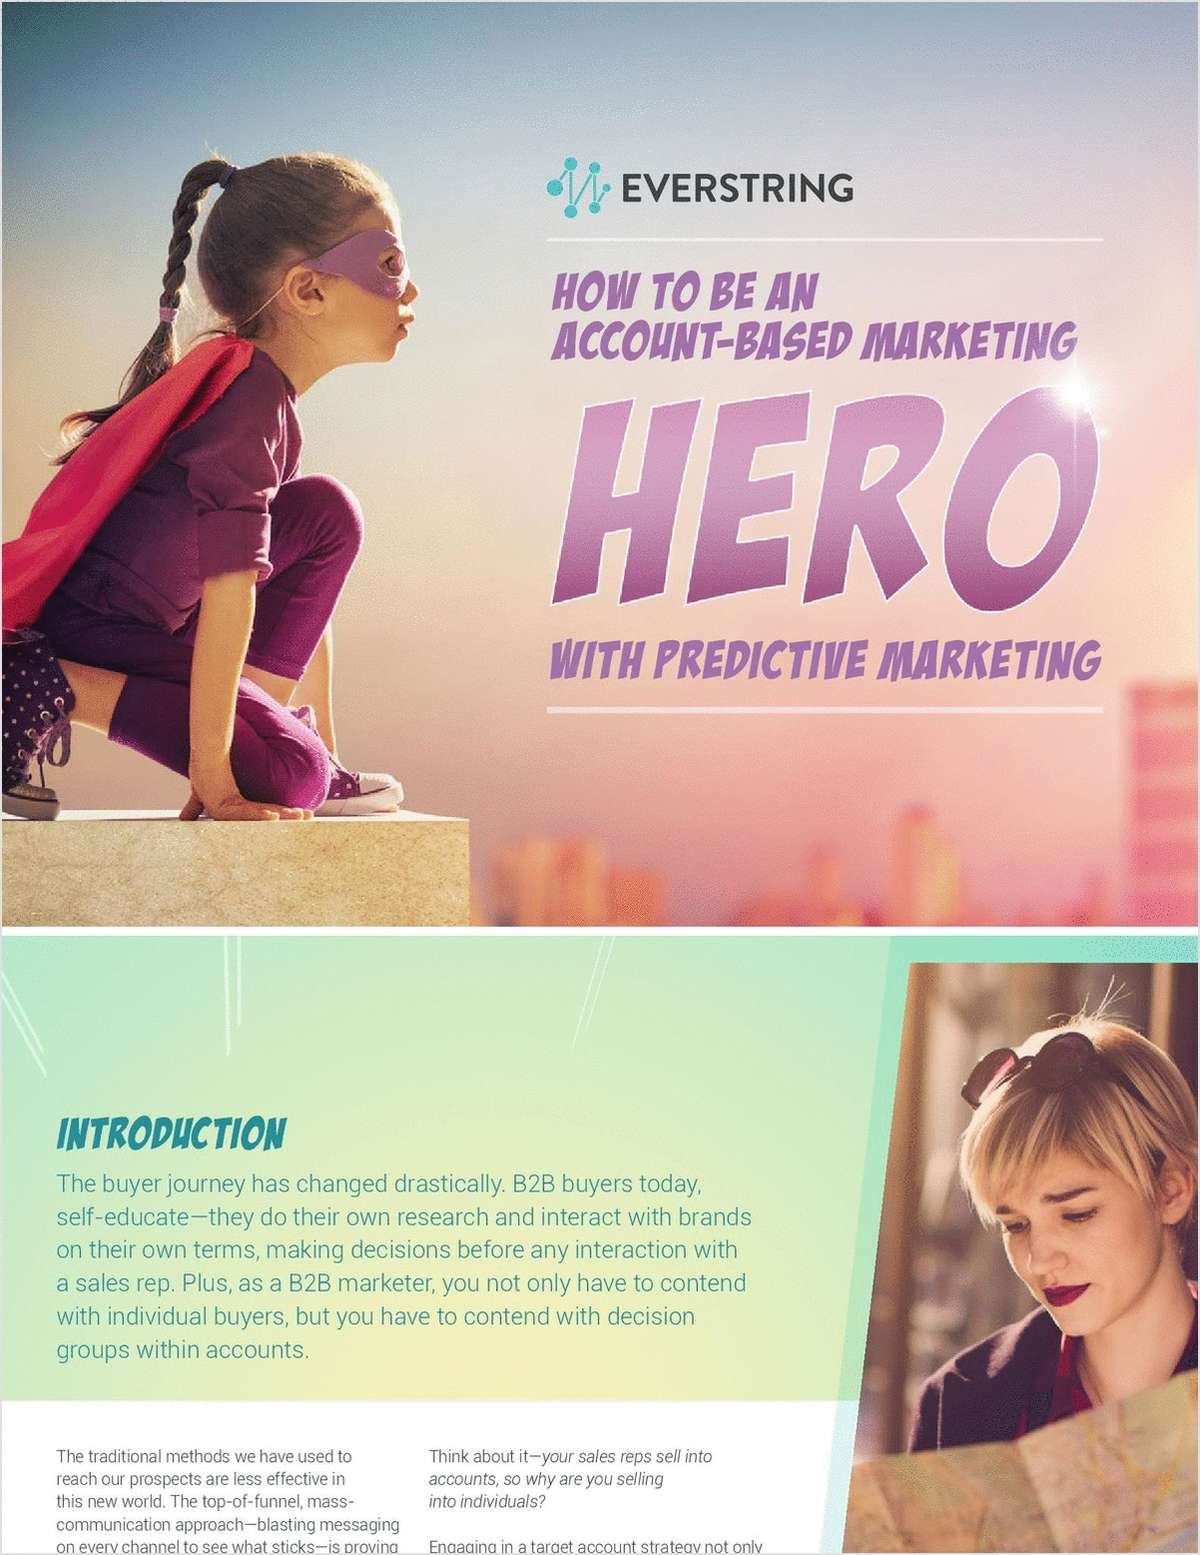 How To Be an Account-Based Marketing Hero with Predictive Marketing